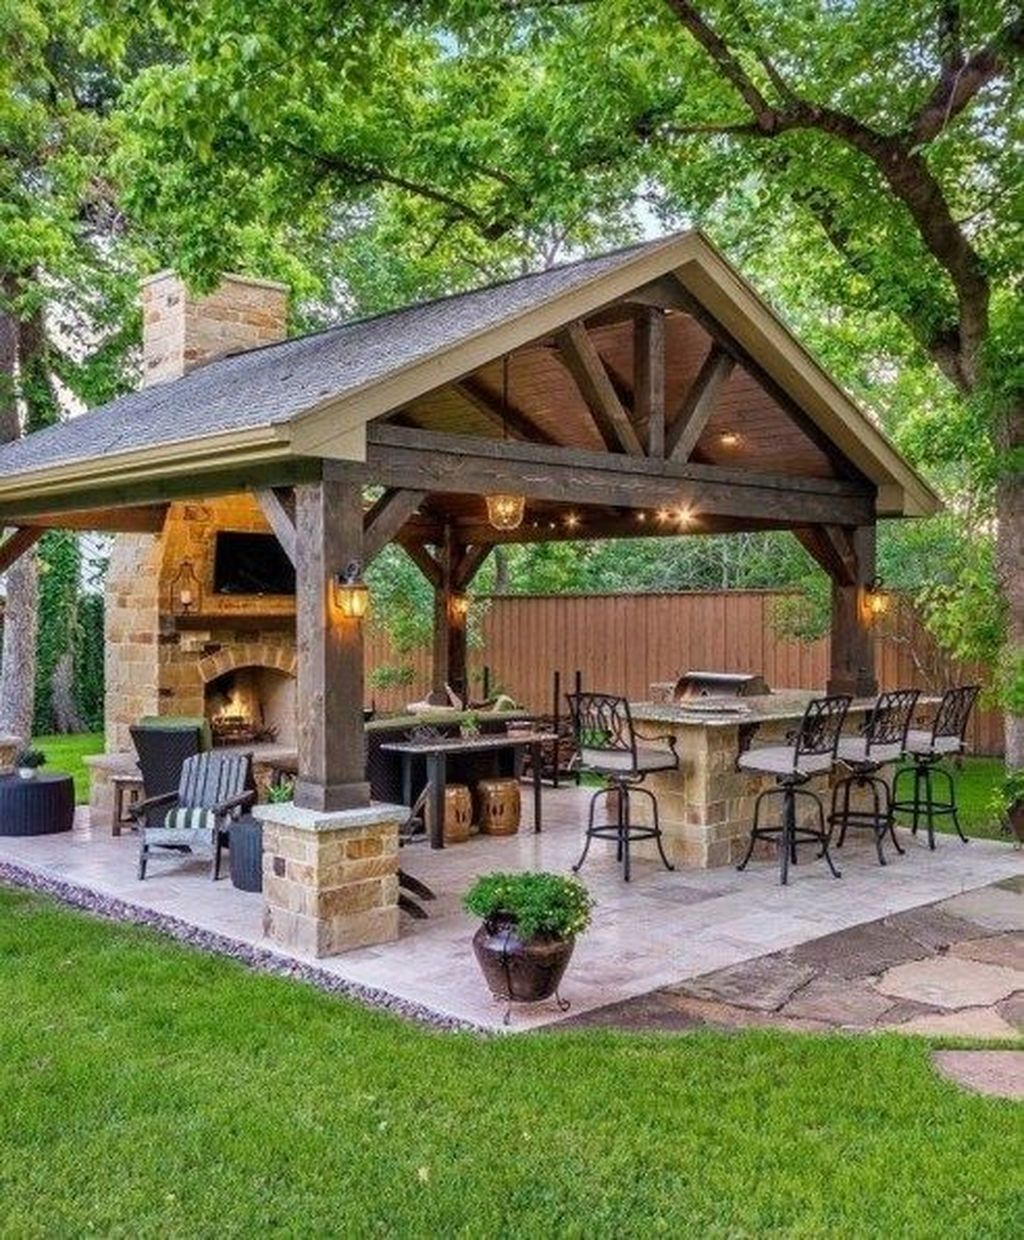 For Many People Patios Are The Place To Chat And Spend Time But Now It Is Time To Realize Its Uses And Backyard Pavilion Patio Pavers Design Backyard Patio